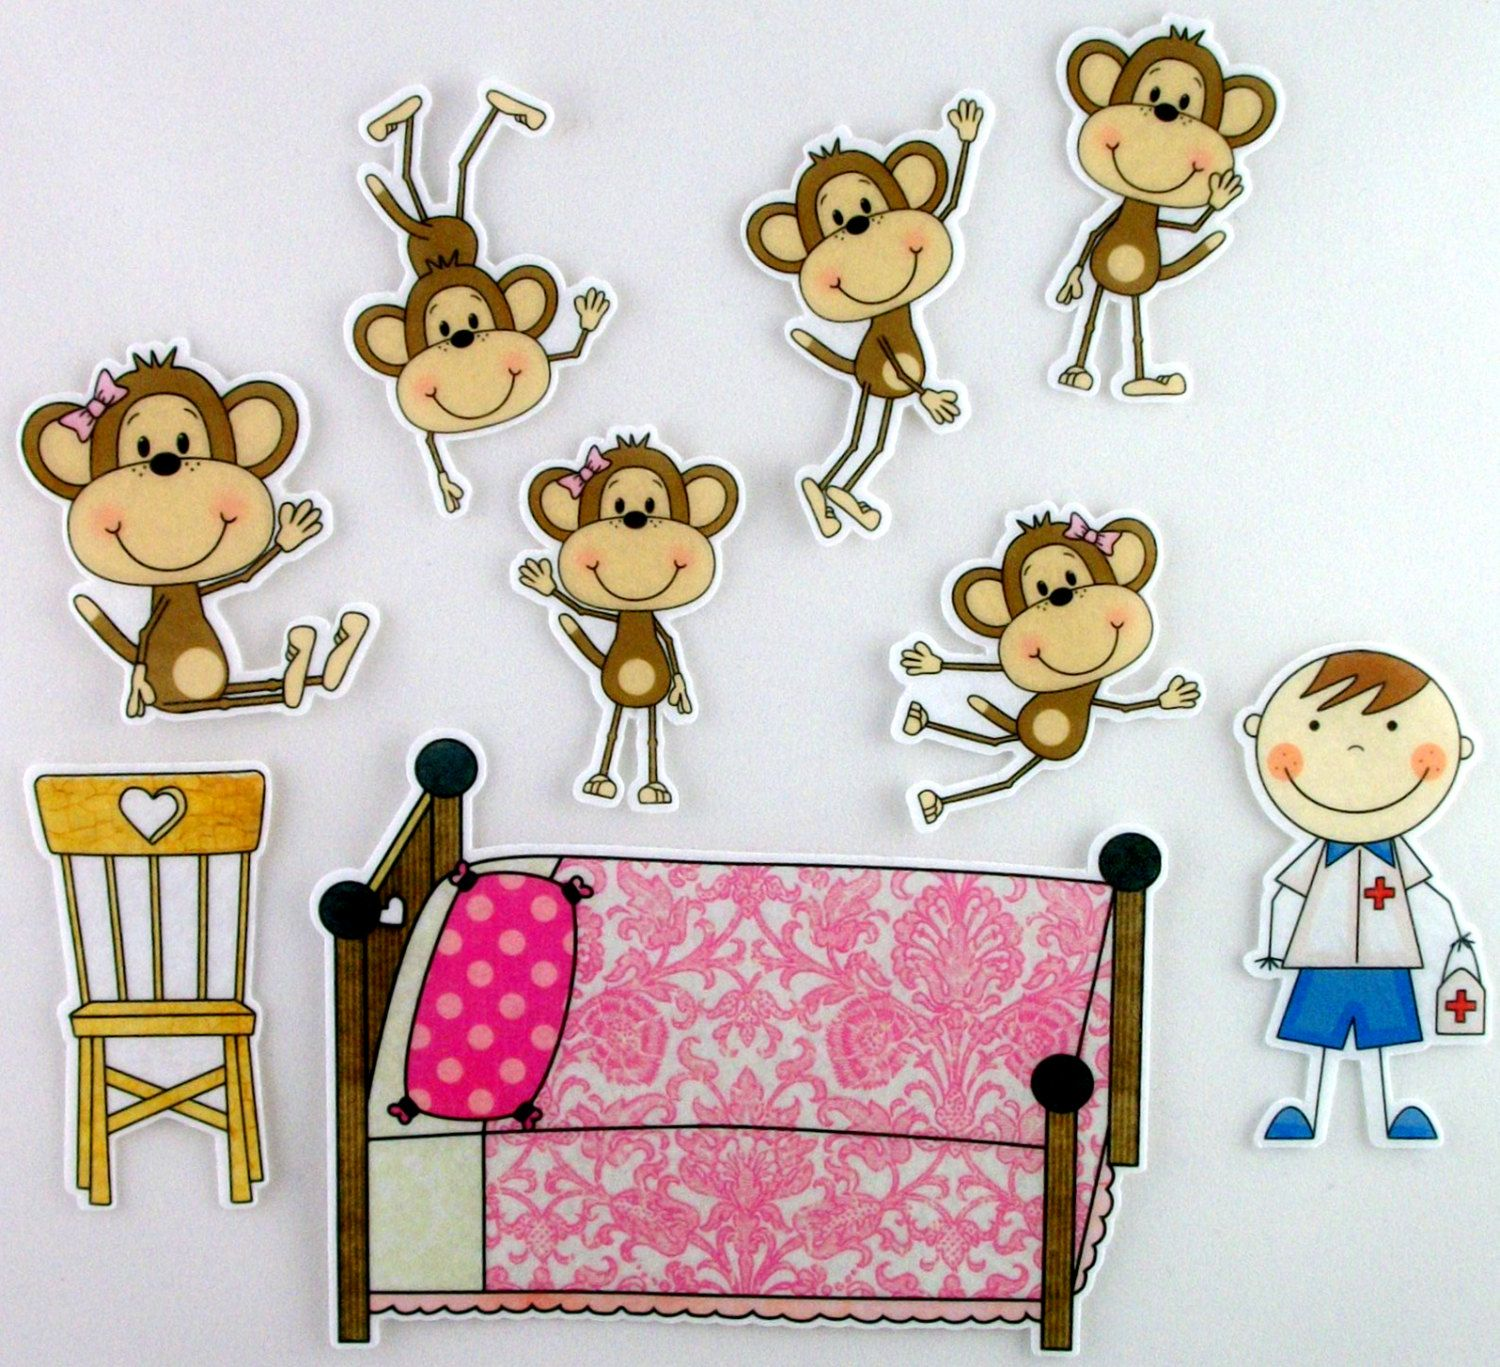 Five monkey jumping on the bed clipart. Little monkeys printables